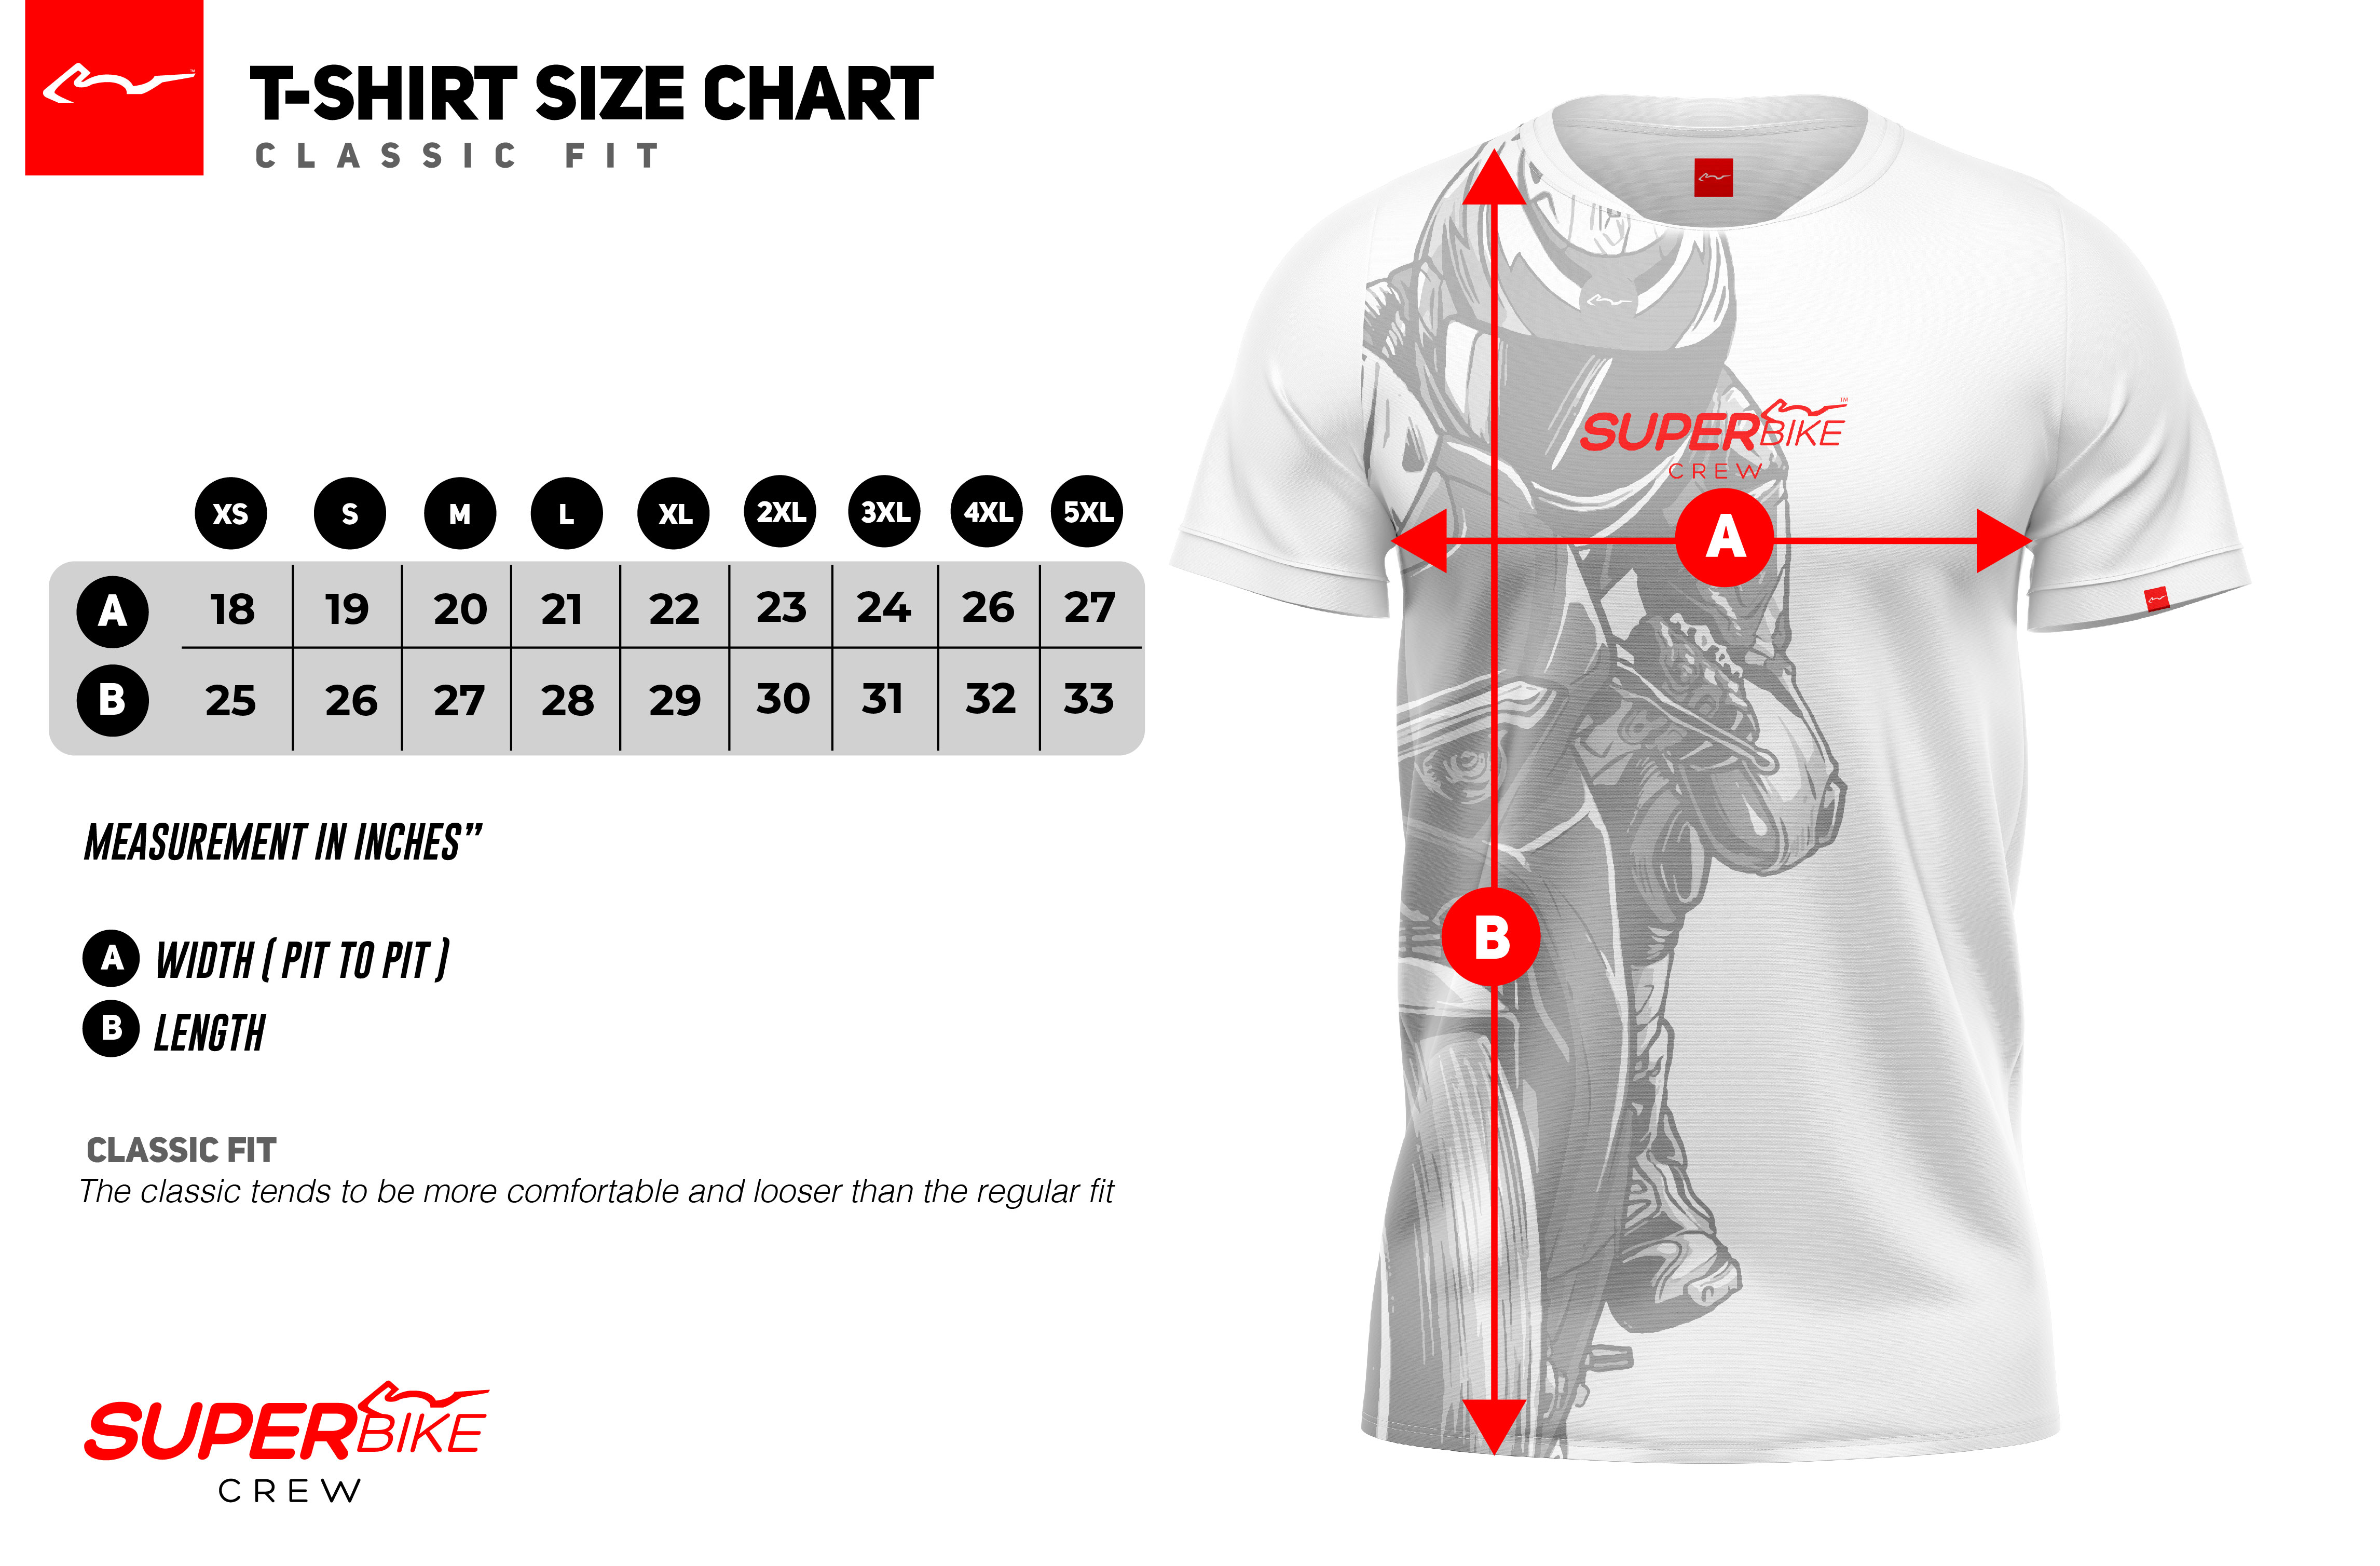 SIZE CHART-CLASSIC FIT-01.jpg